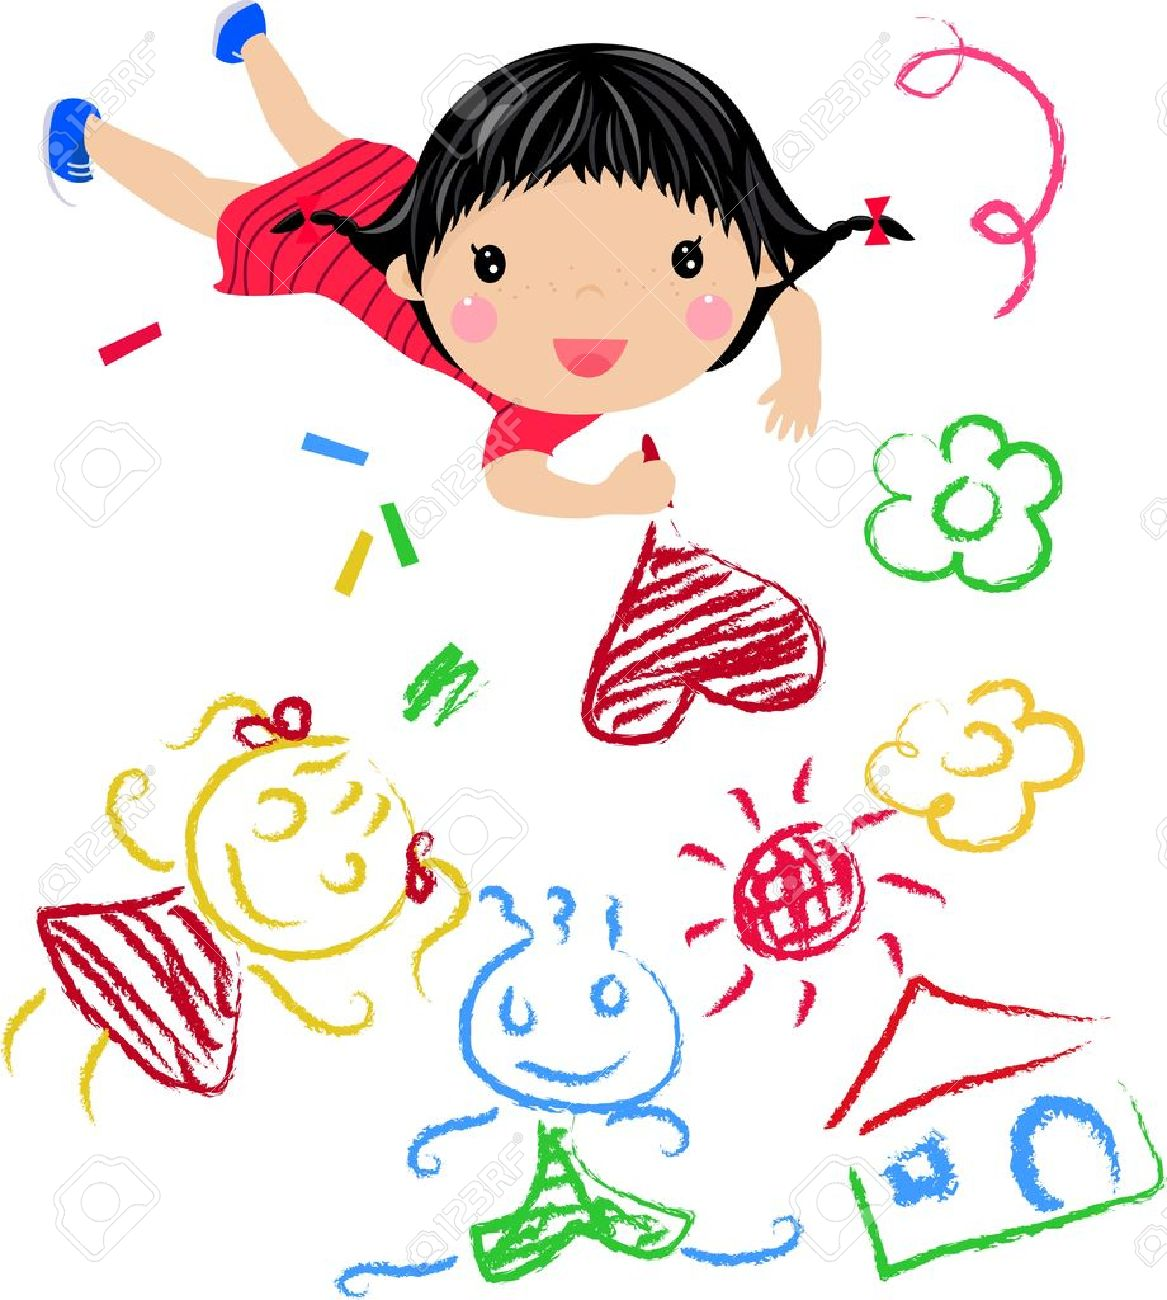 kids drawing - Kid Drawing Picture